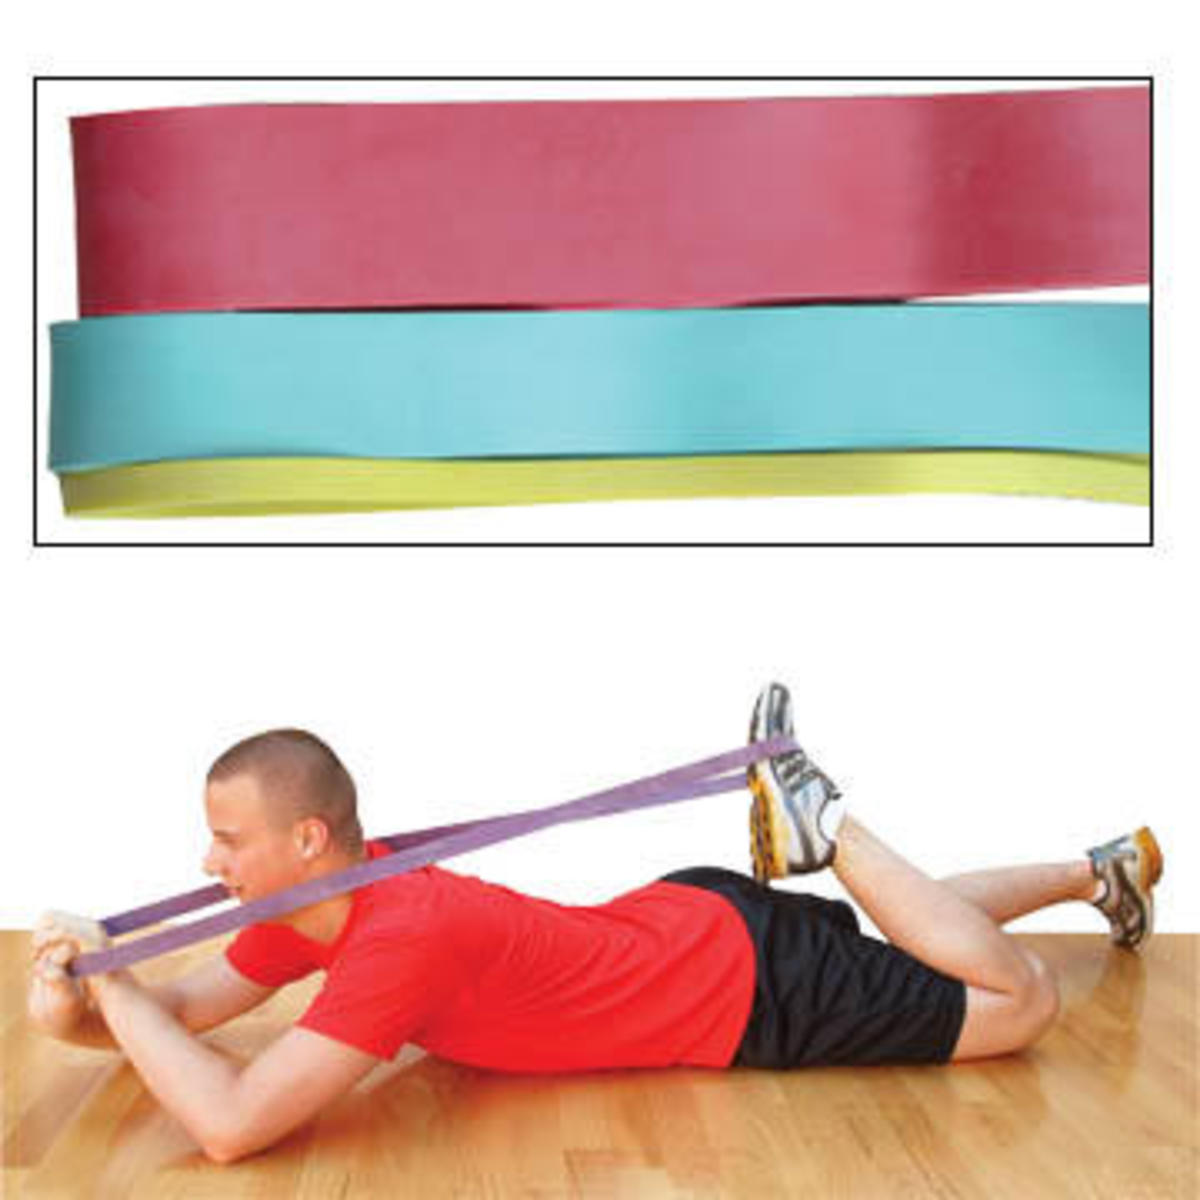 Sample Resistance Band Exercise with Male Demonstrating Proper Positioning